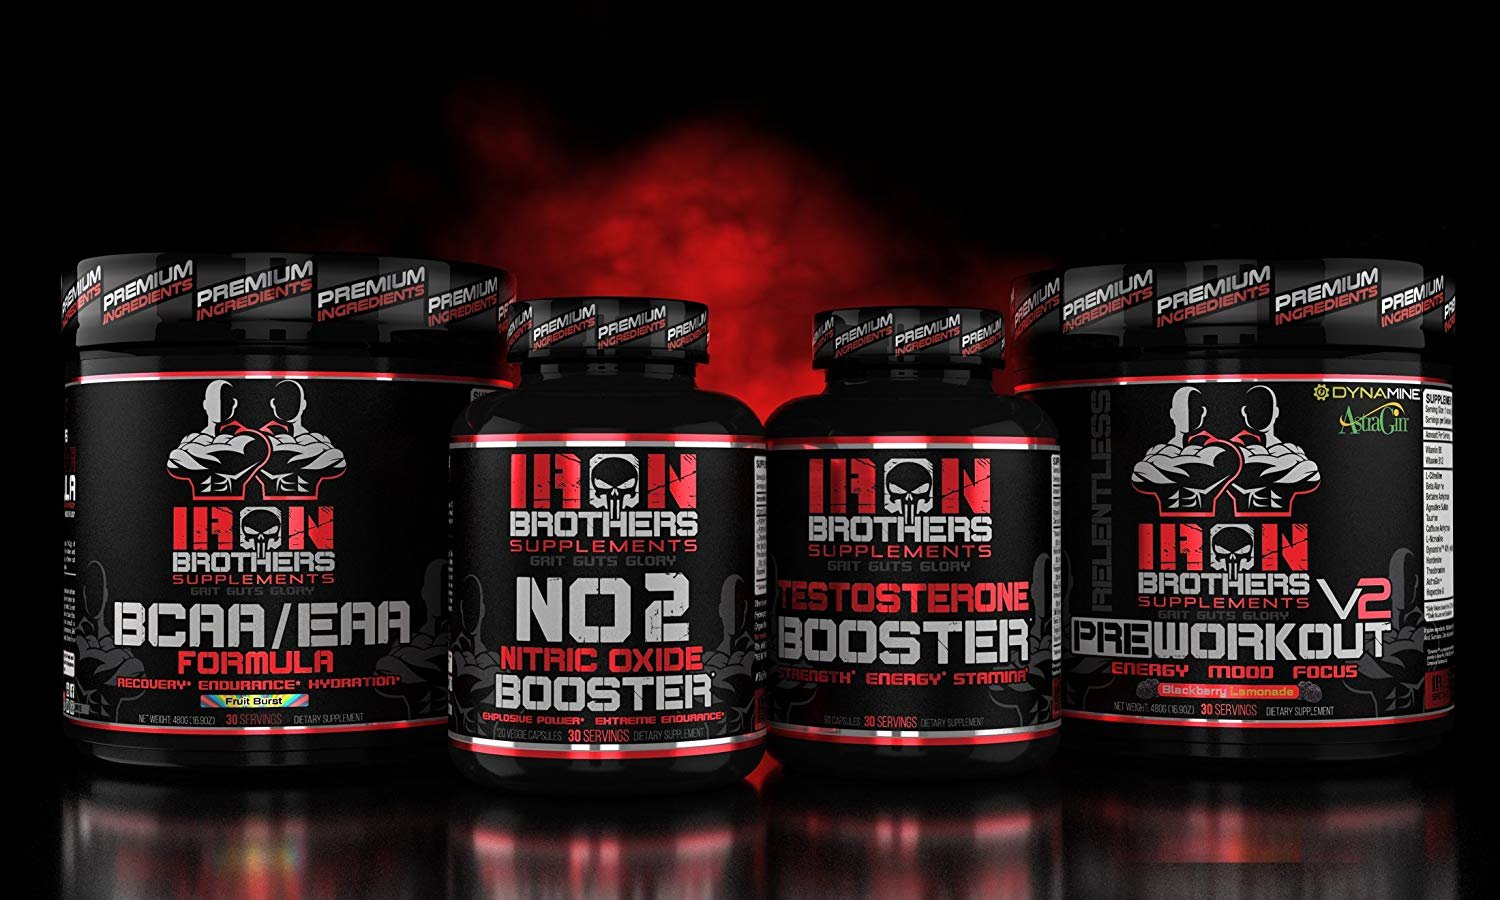 Nitric Oxide Supplements NO2 Booster Pre Workout with Fermented L-Arginine Increase Muscle Pumps Blood Flow Energy Strength Endurance -120 Veggie Capsules-Citrulline Organic Brown Rice Flour